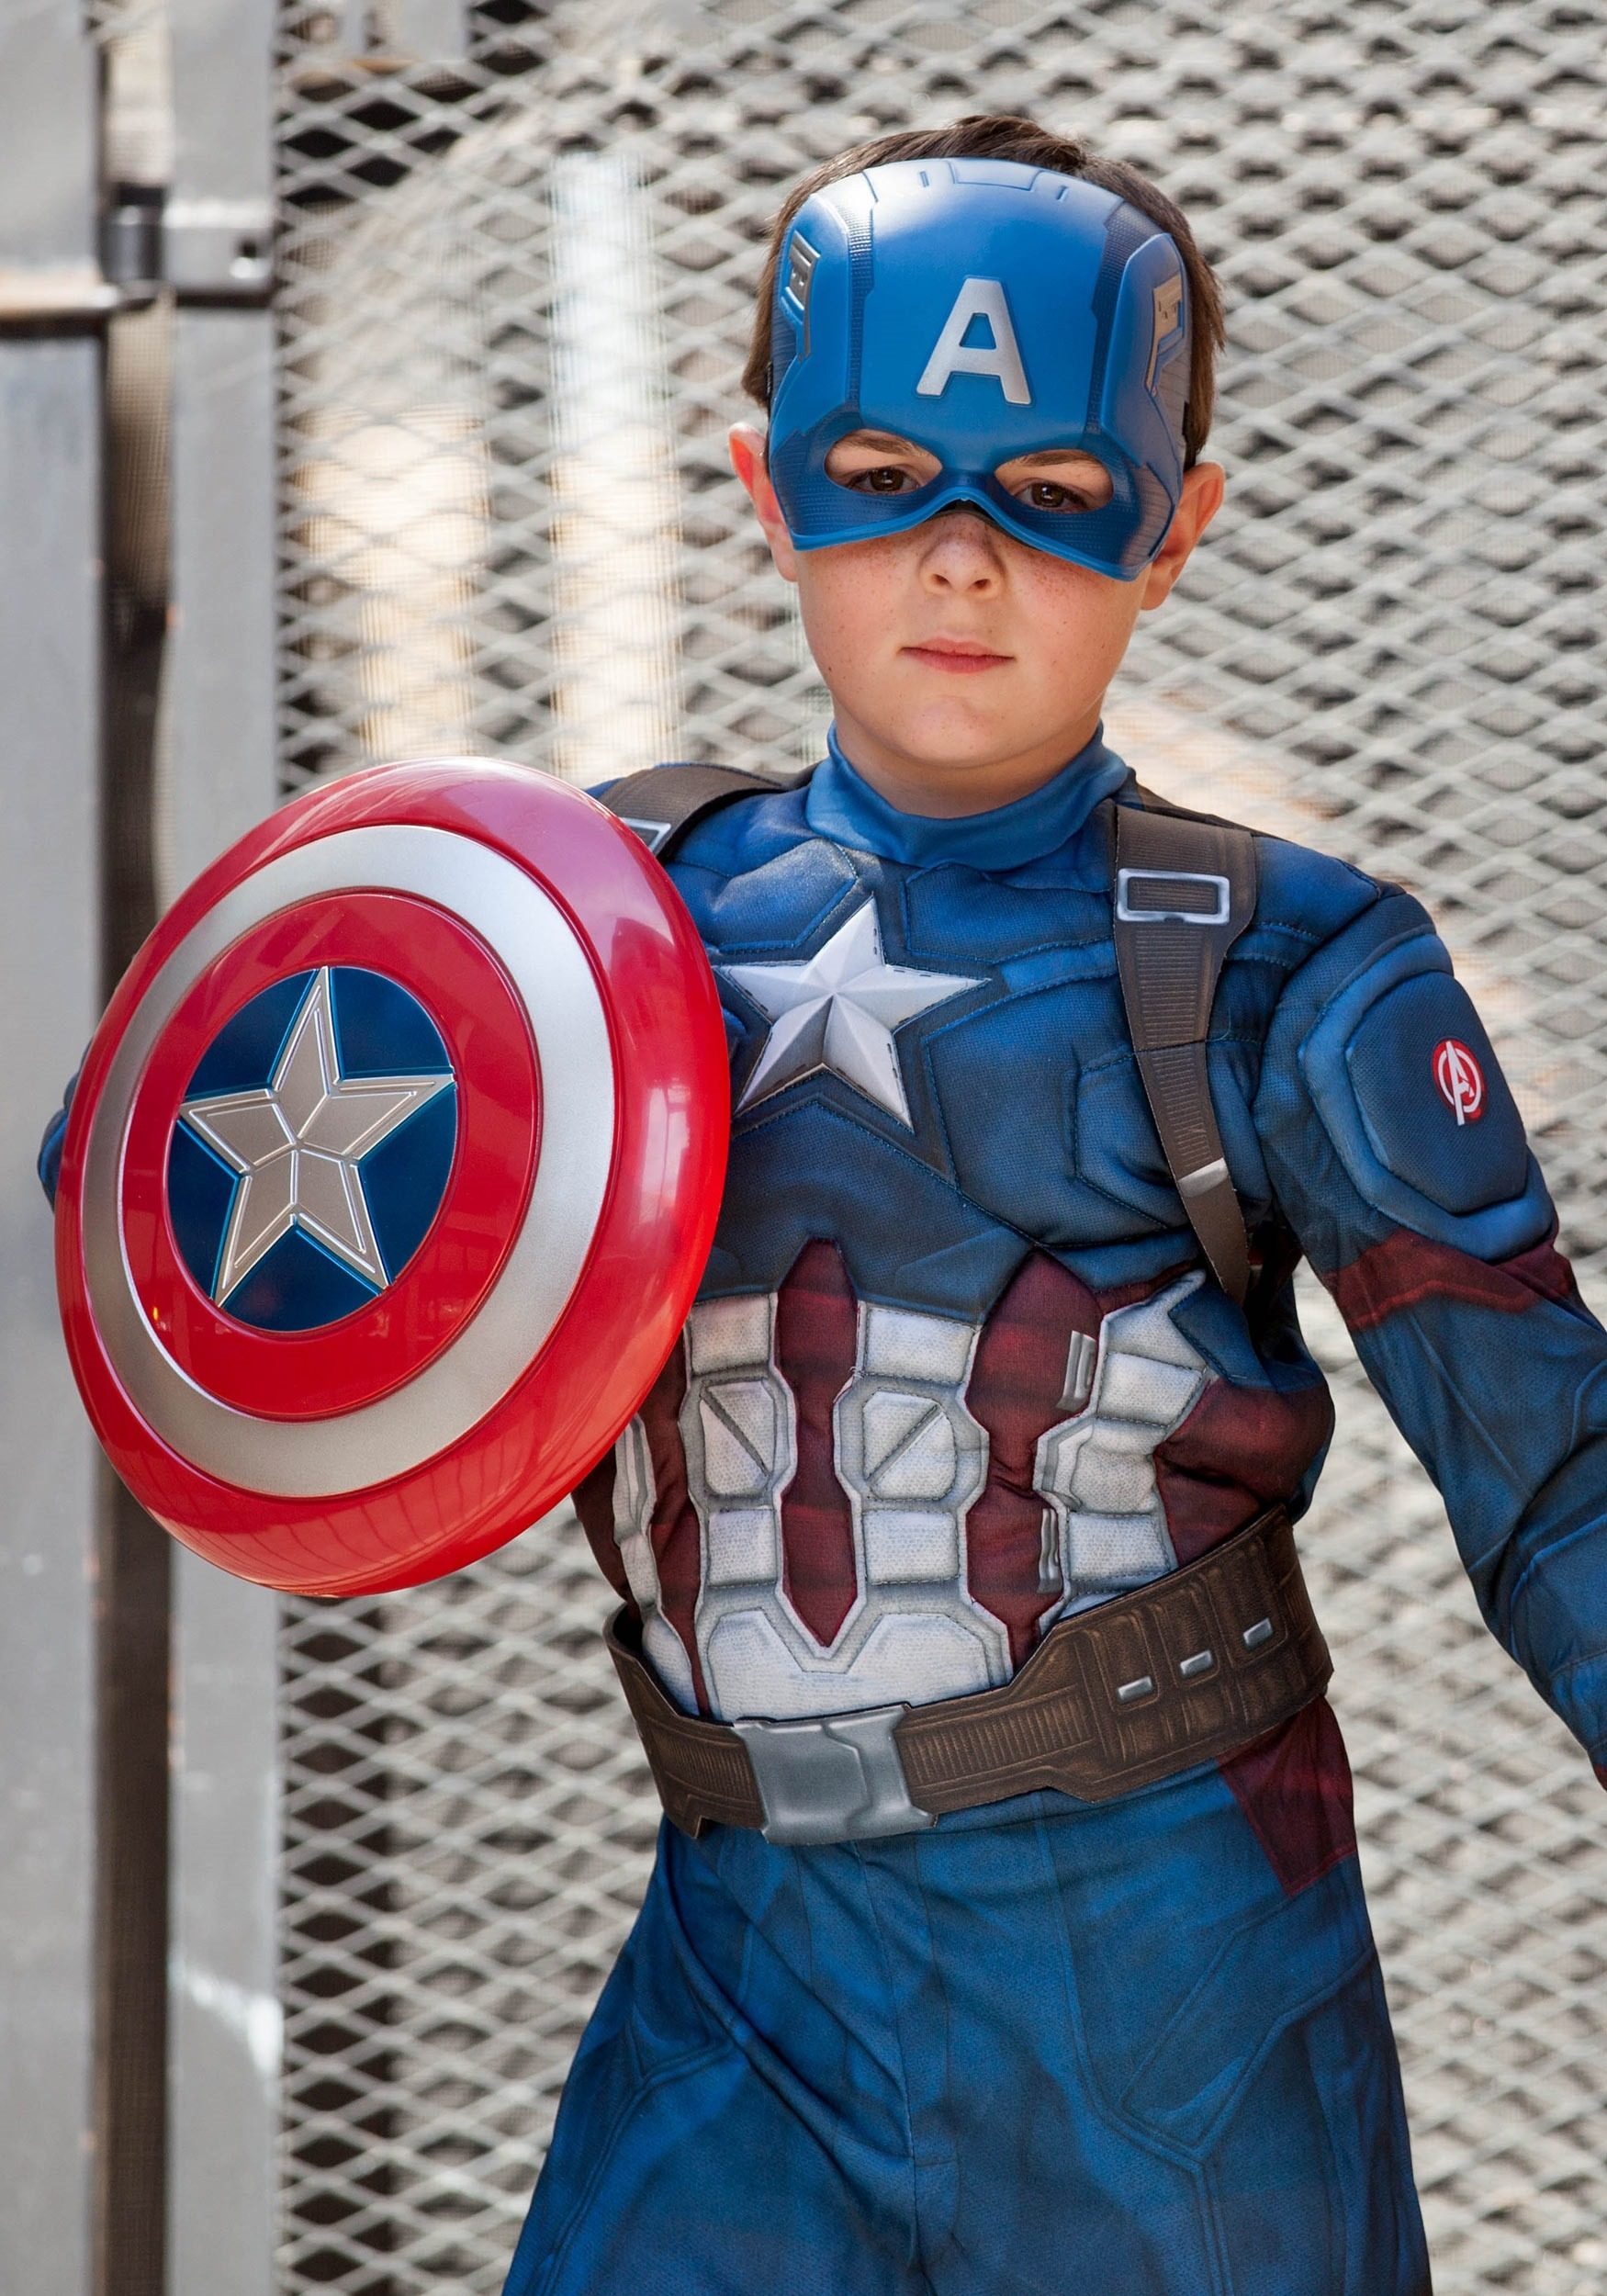 Captain America Cosplay costumes take on a black hue as the online stores get crammed with it. The Bucky Barnes costume involves a leather sleeveless jacket with laces up its front, to be worn over a tight fitting leather shirt which is also entirely black, save for one .